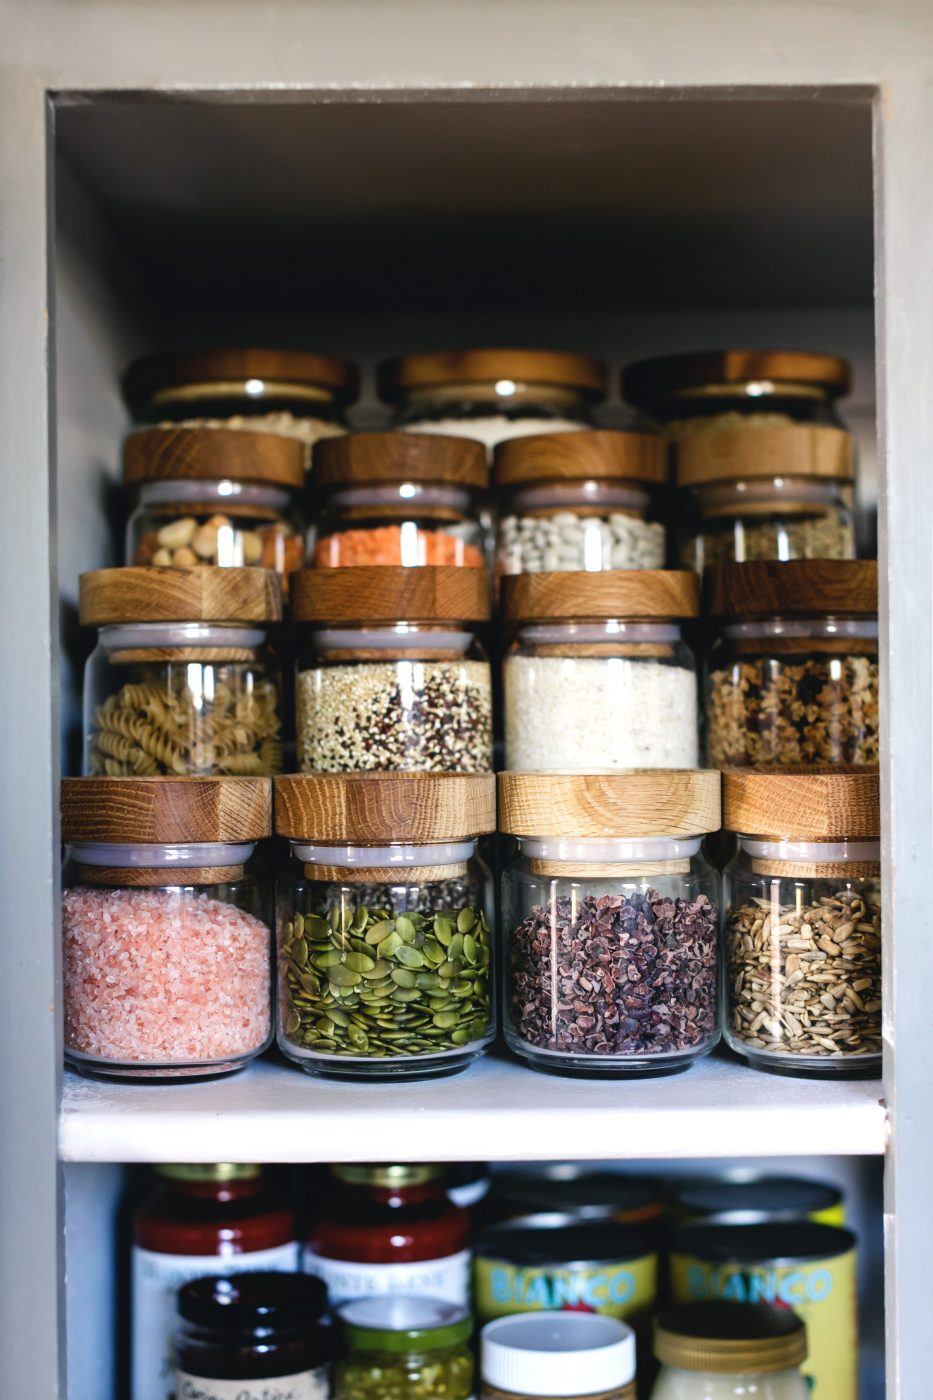 Pantry Organization - Shelf Risers